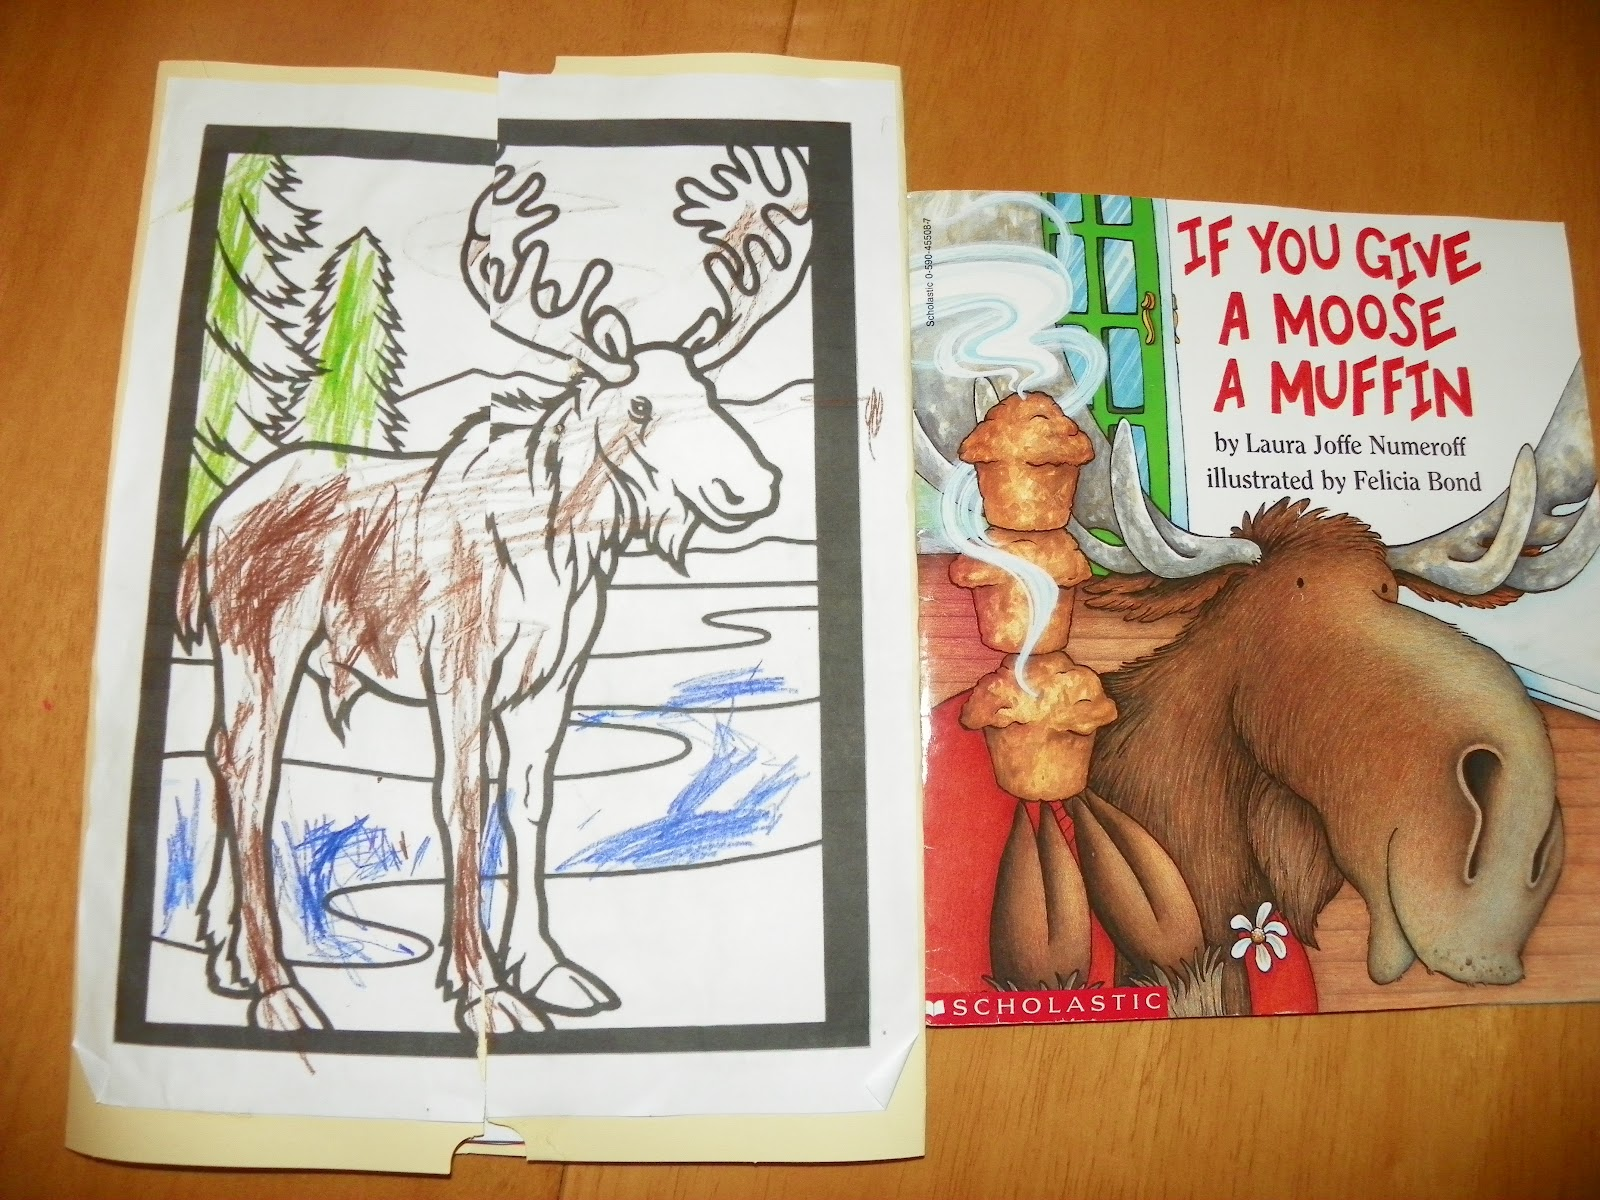 The Little Sewing Shop If You Give A Moose A Muffin